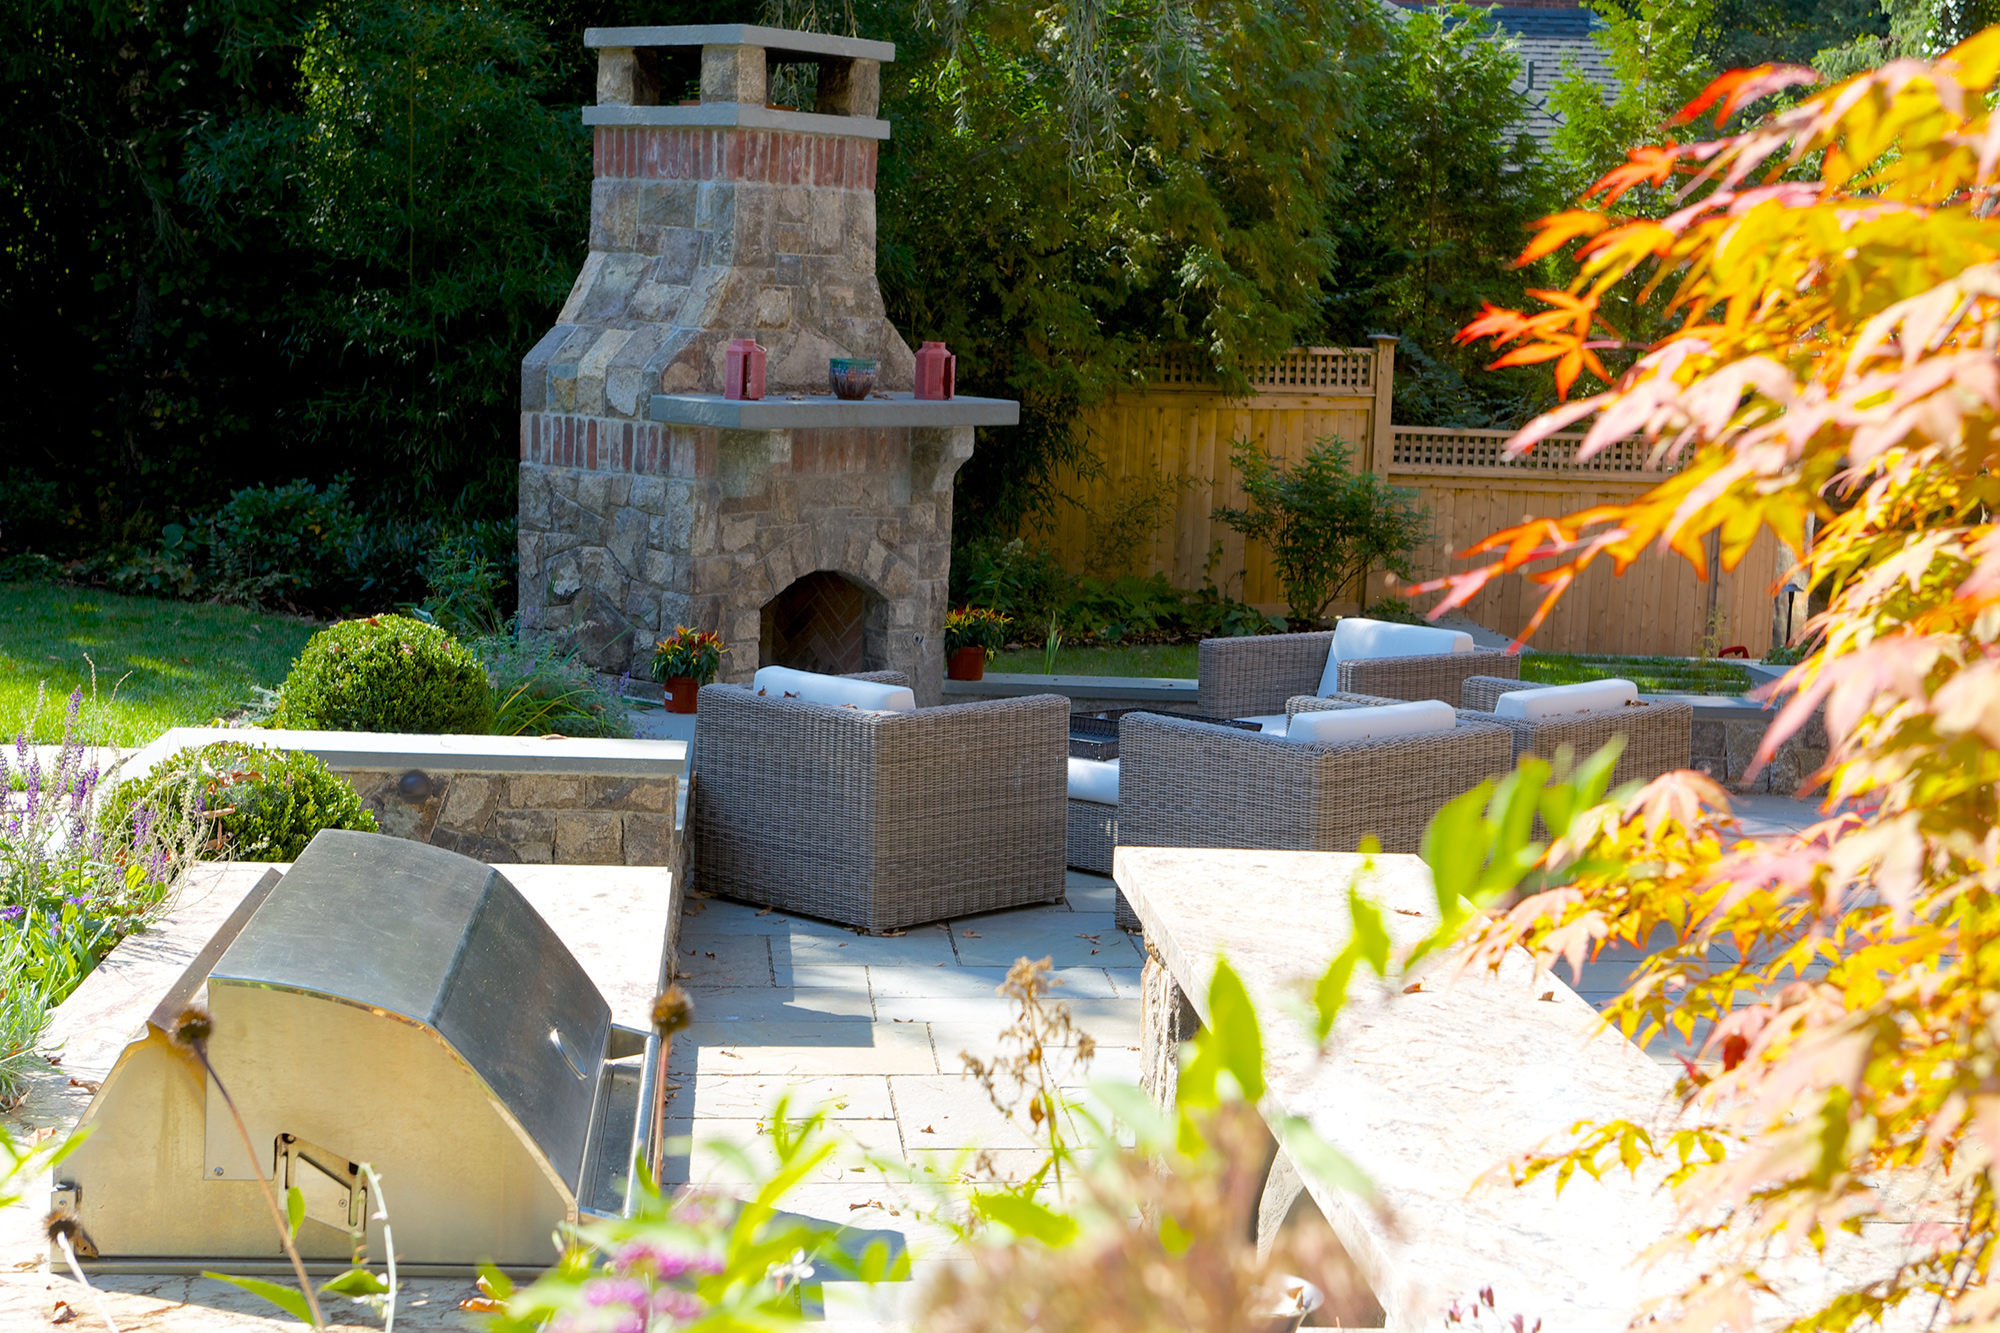 Old World Charm - A NJ landscaping design complementing a century-old home